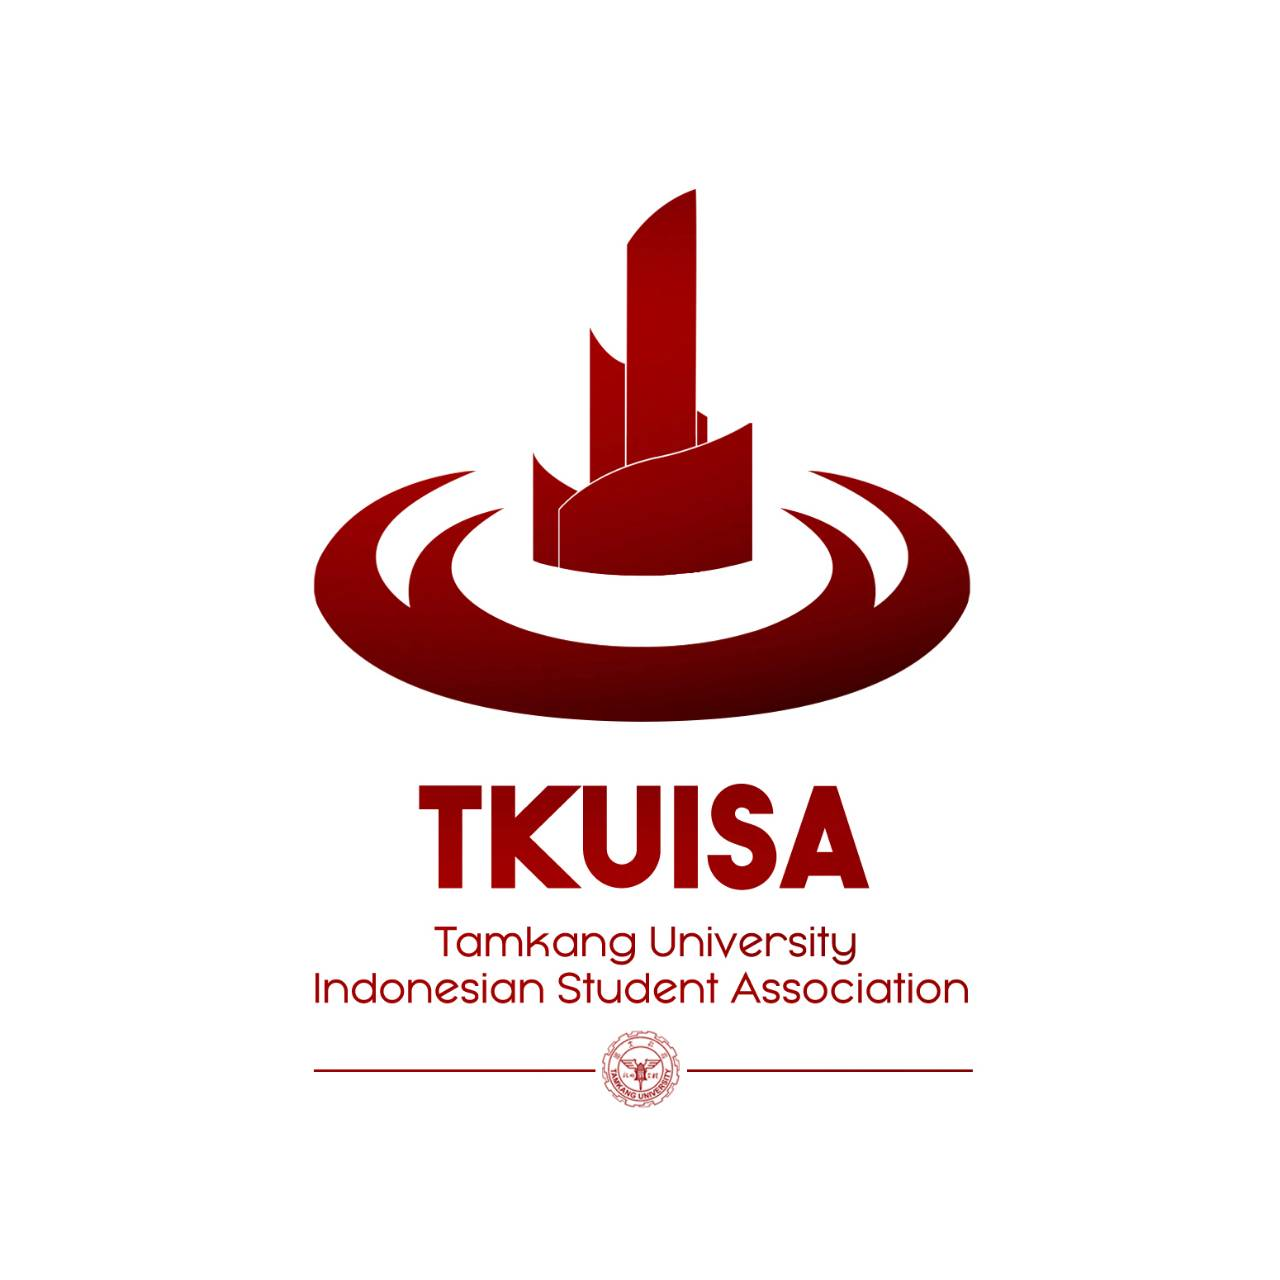 Indonesian Student Association